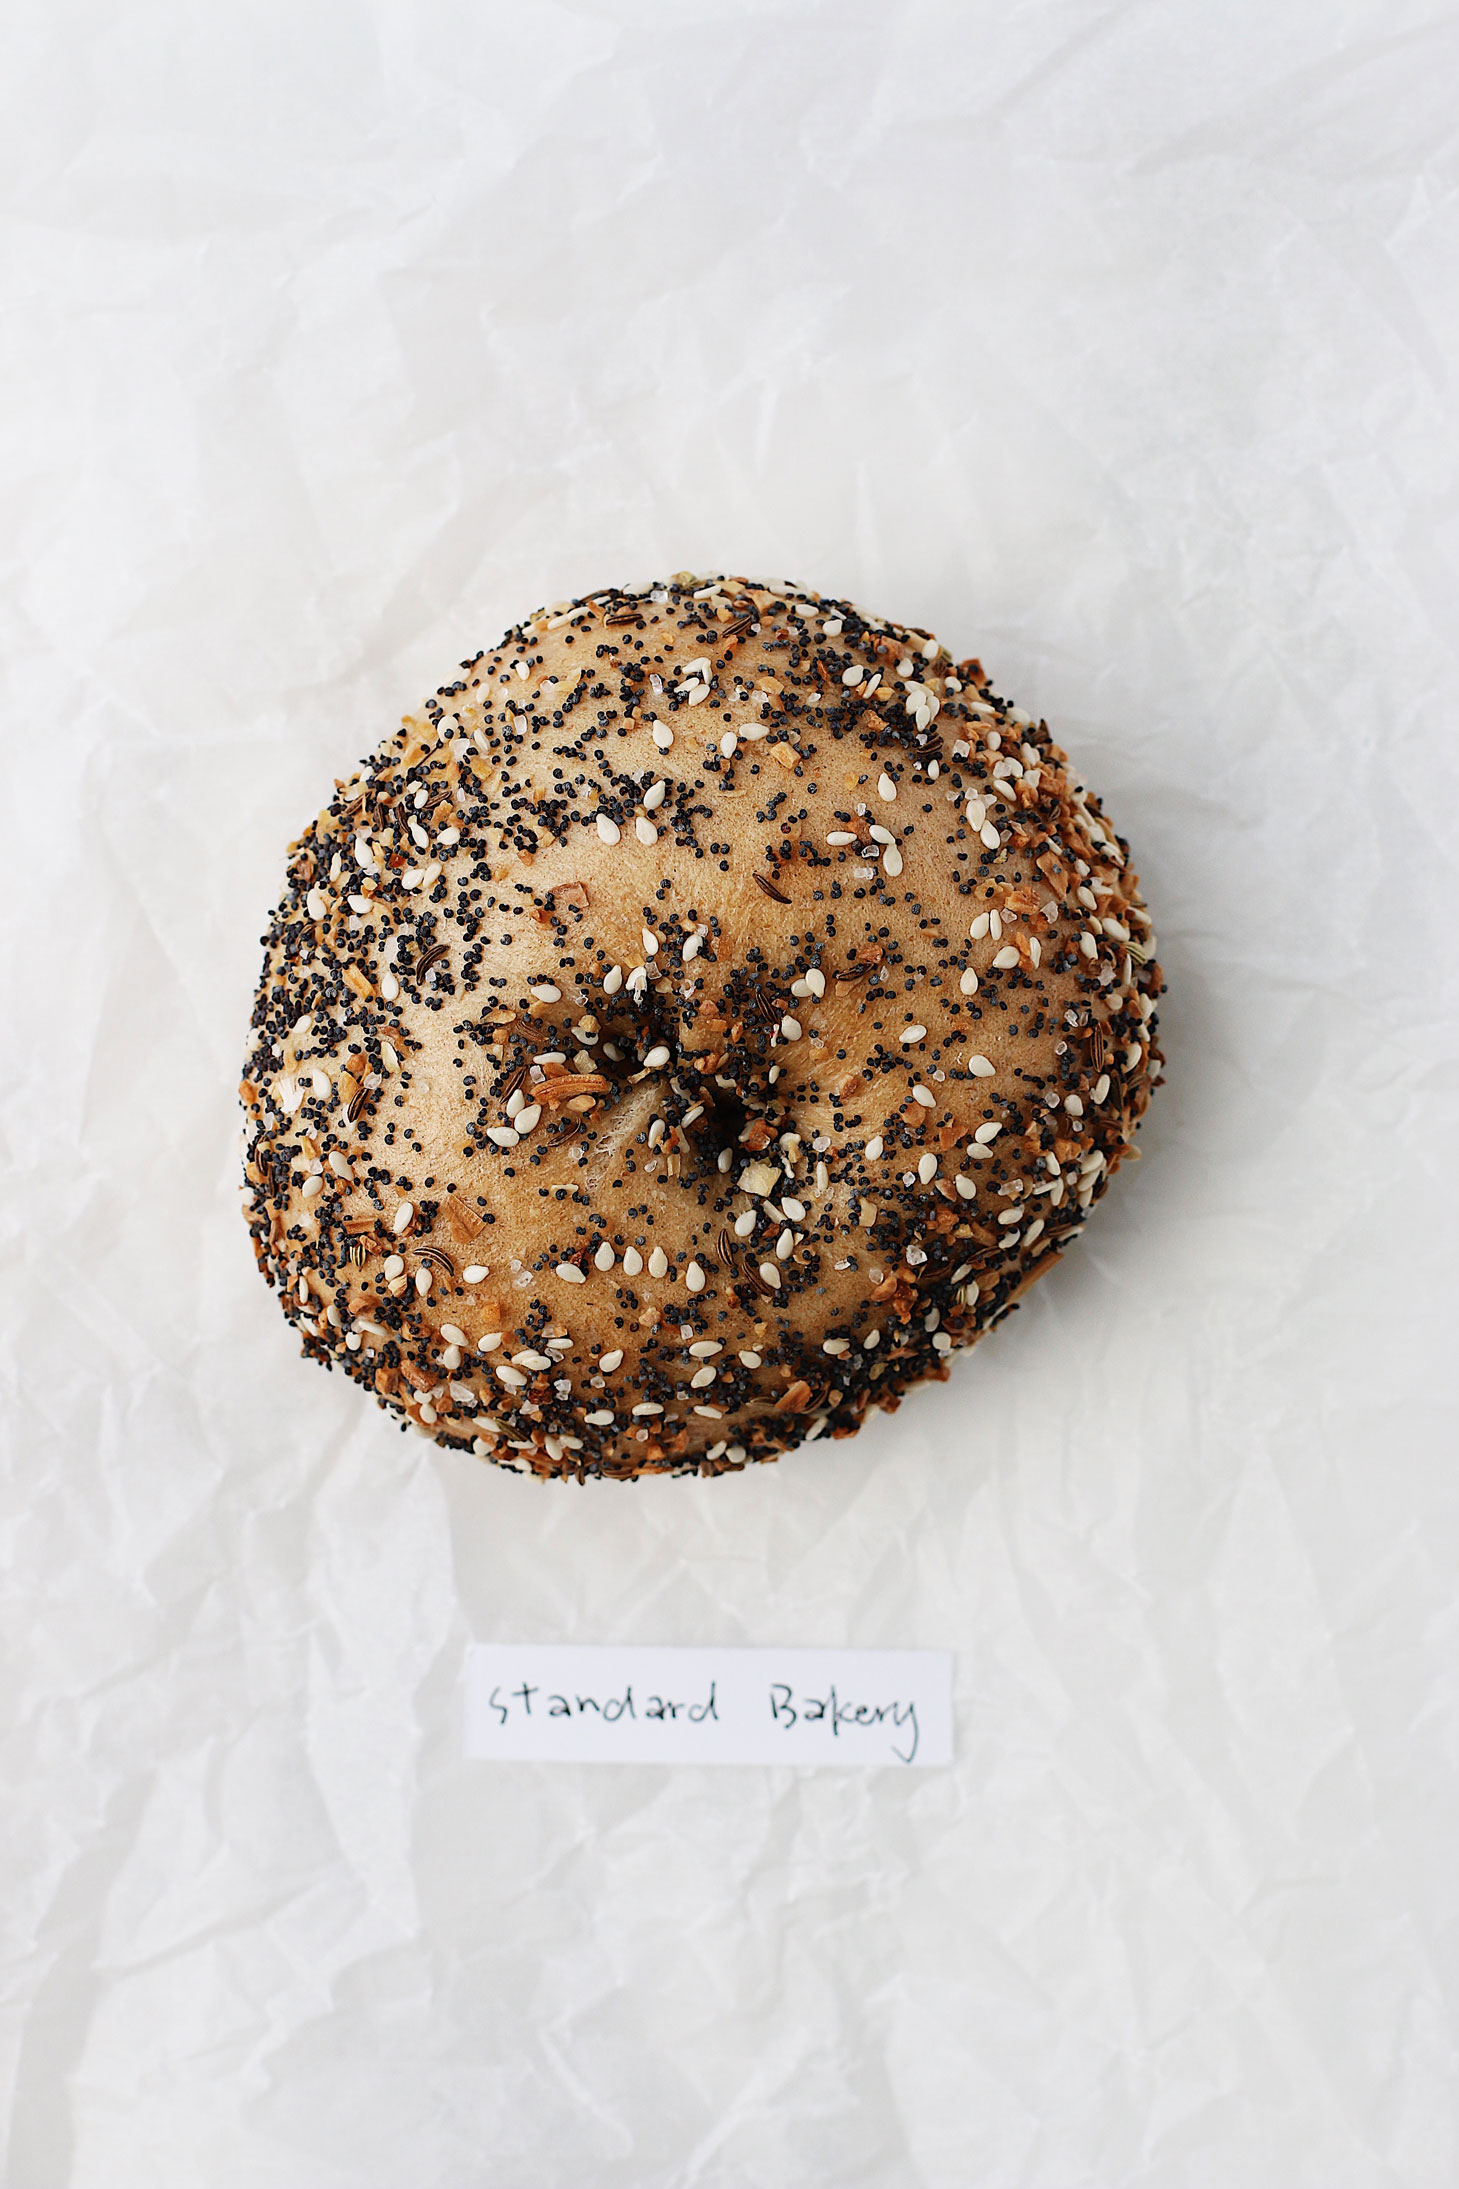 best-bagel-in-seattle-great-bagel-off-standard-bakery-everything